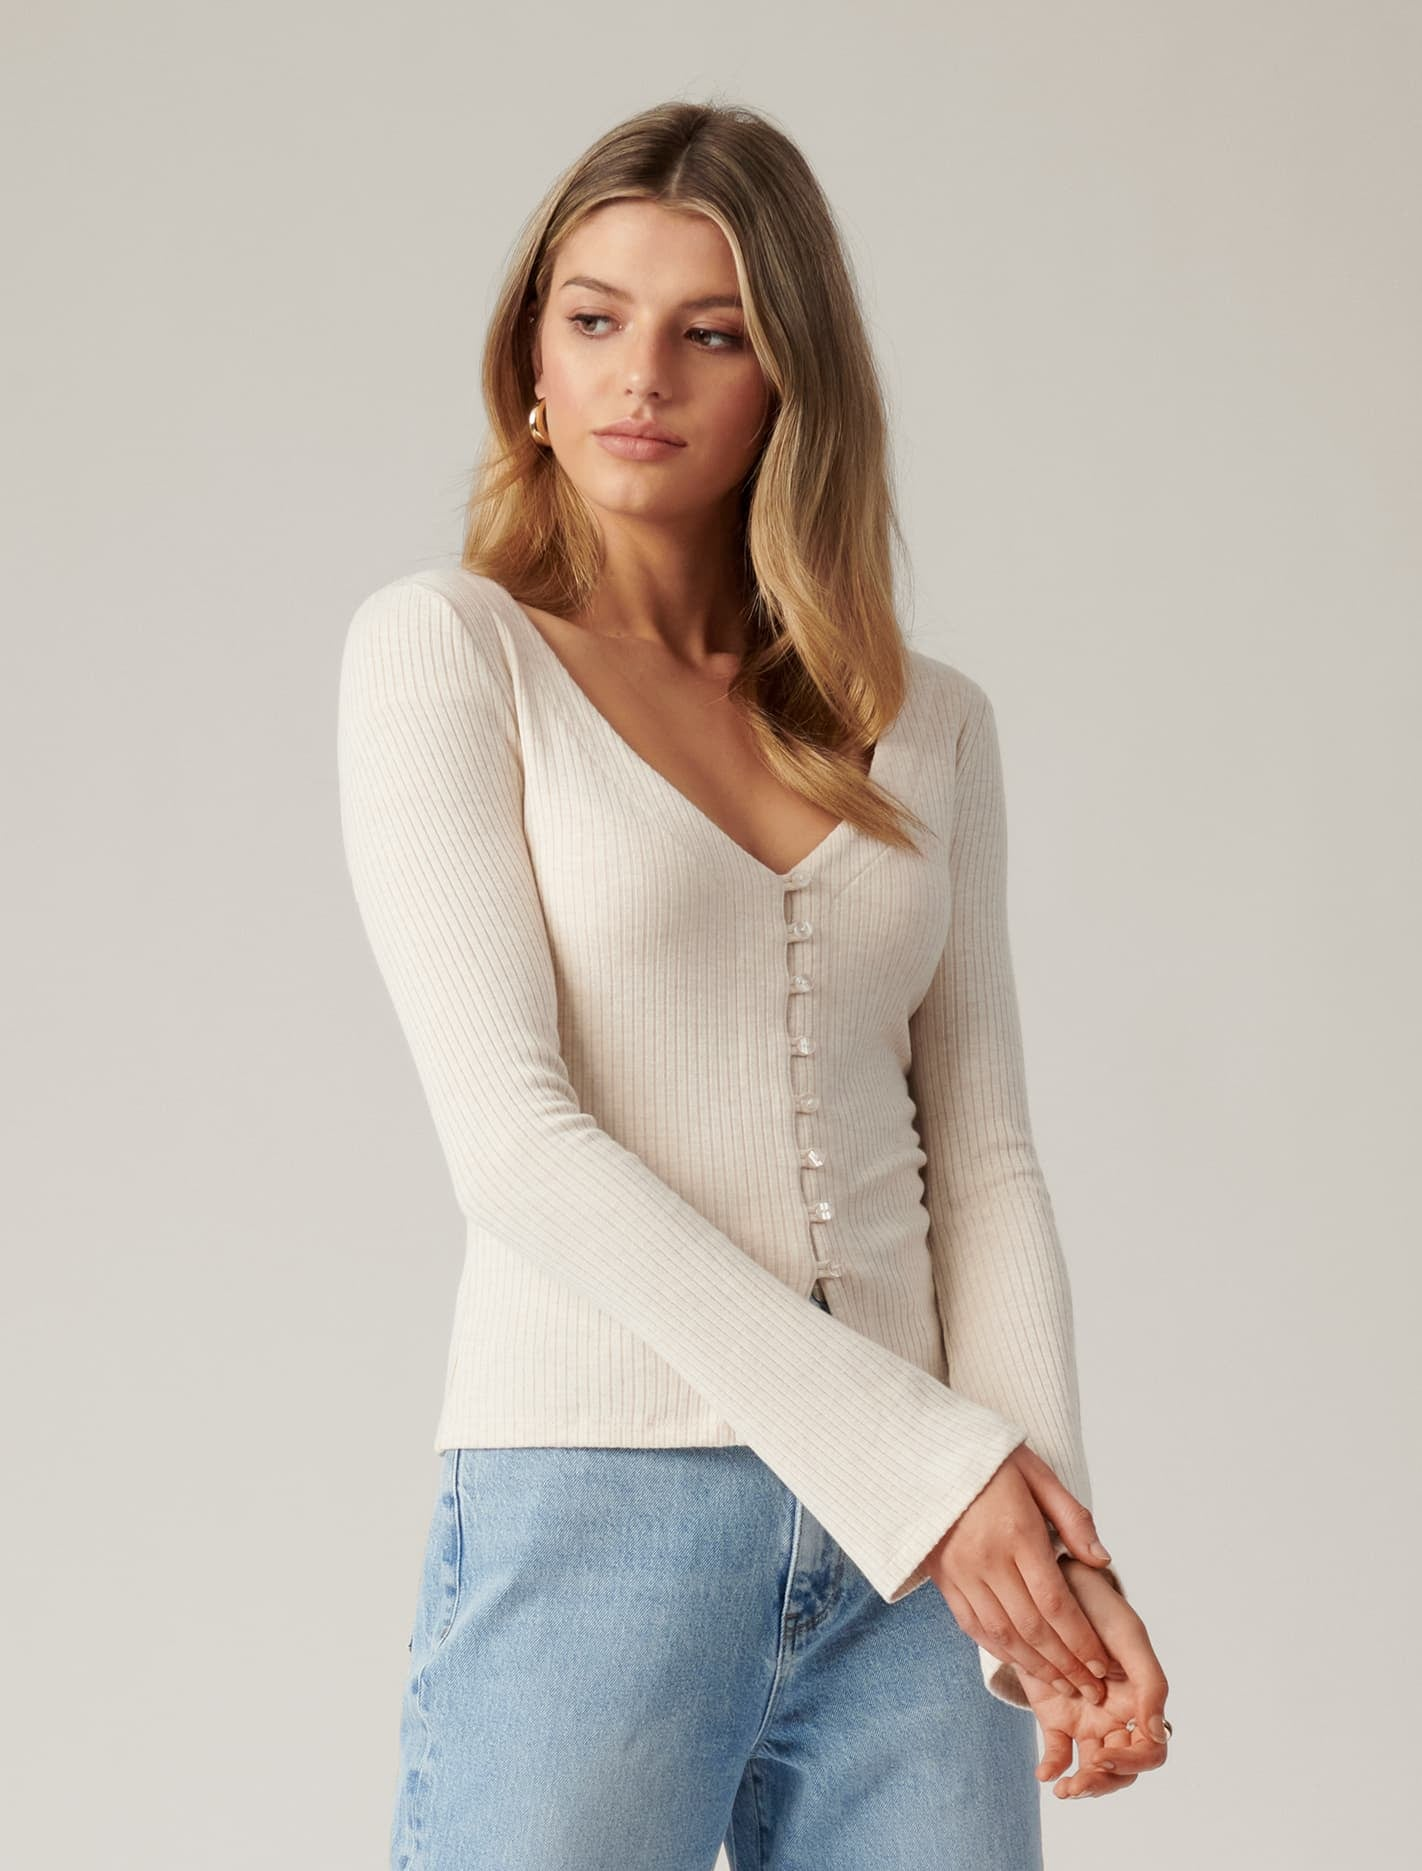 Ever New Brittany Button Down Cardi Top - Oatmilk